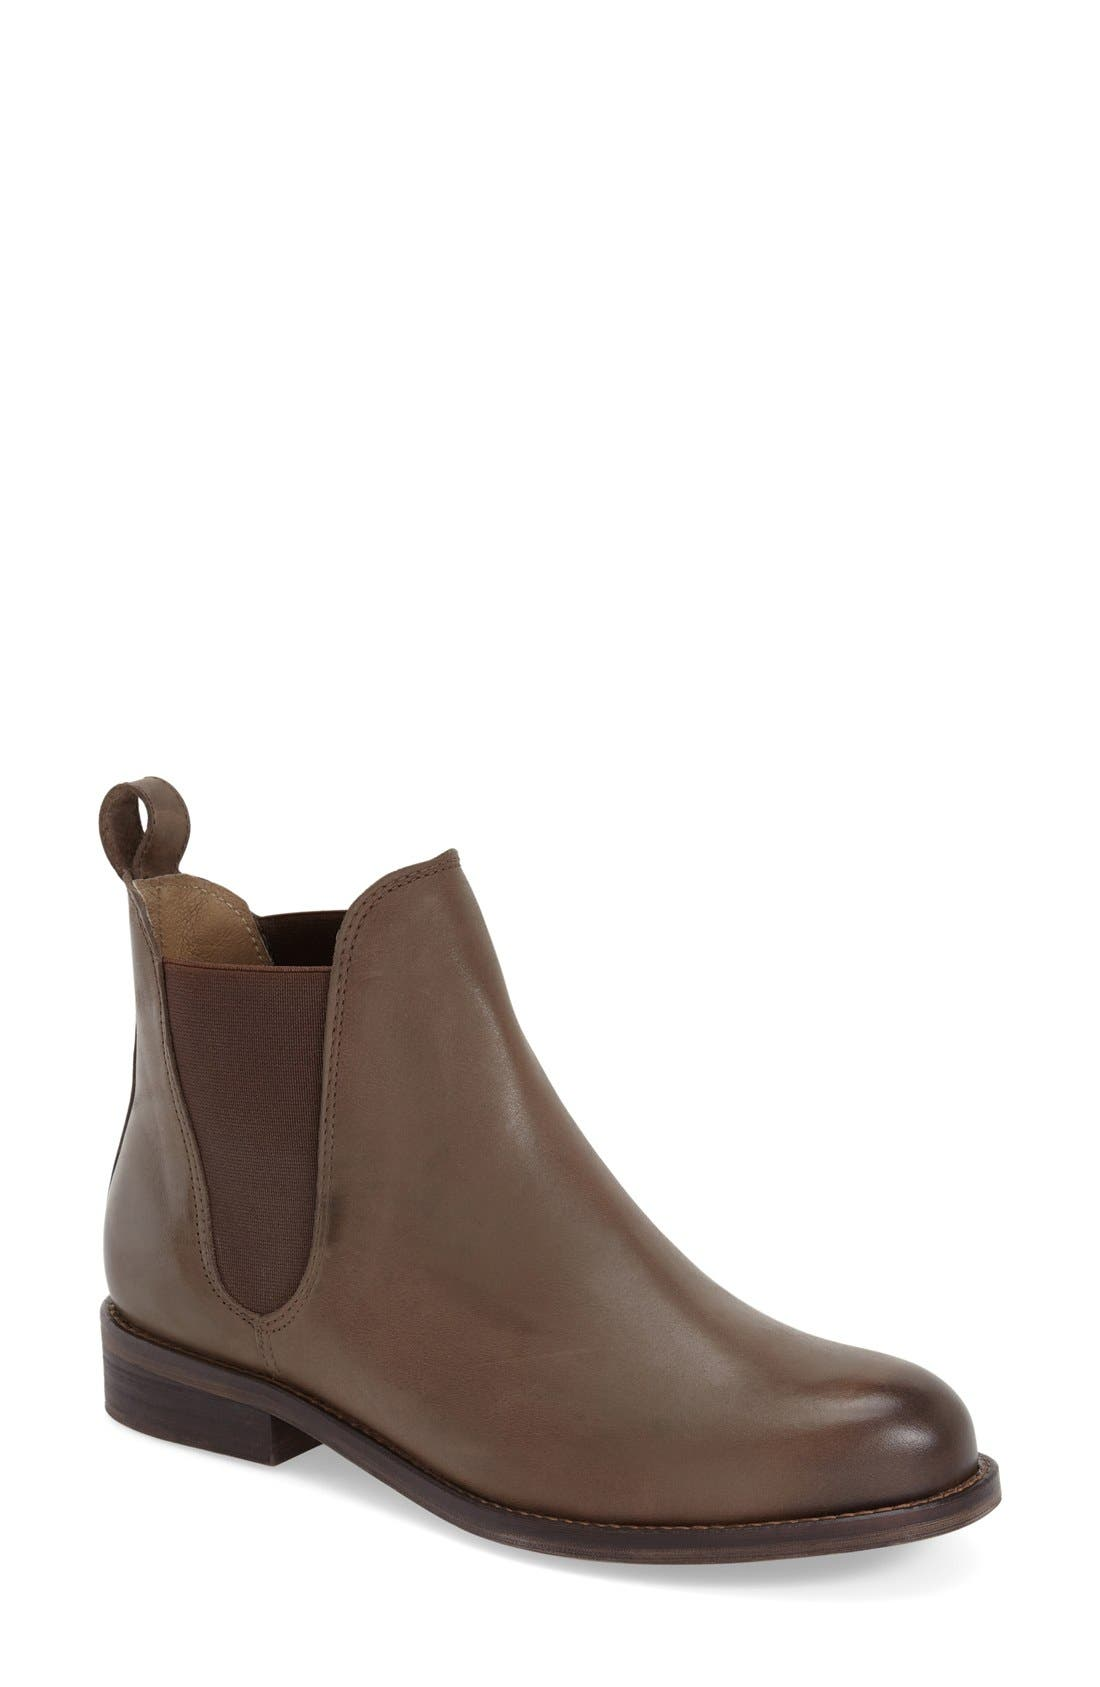 'Royce' Chelsea Boot, Main, color, 251